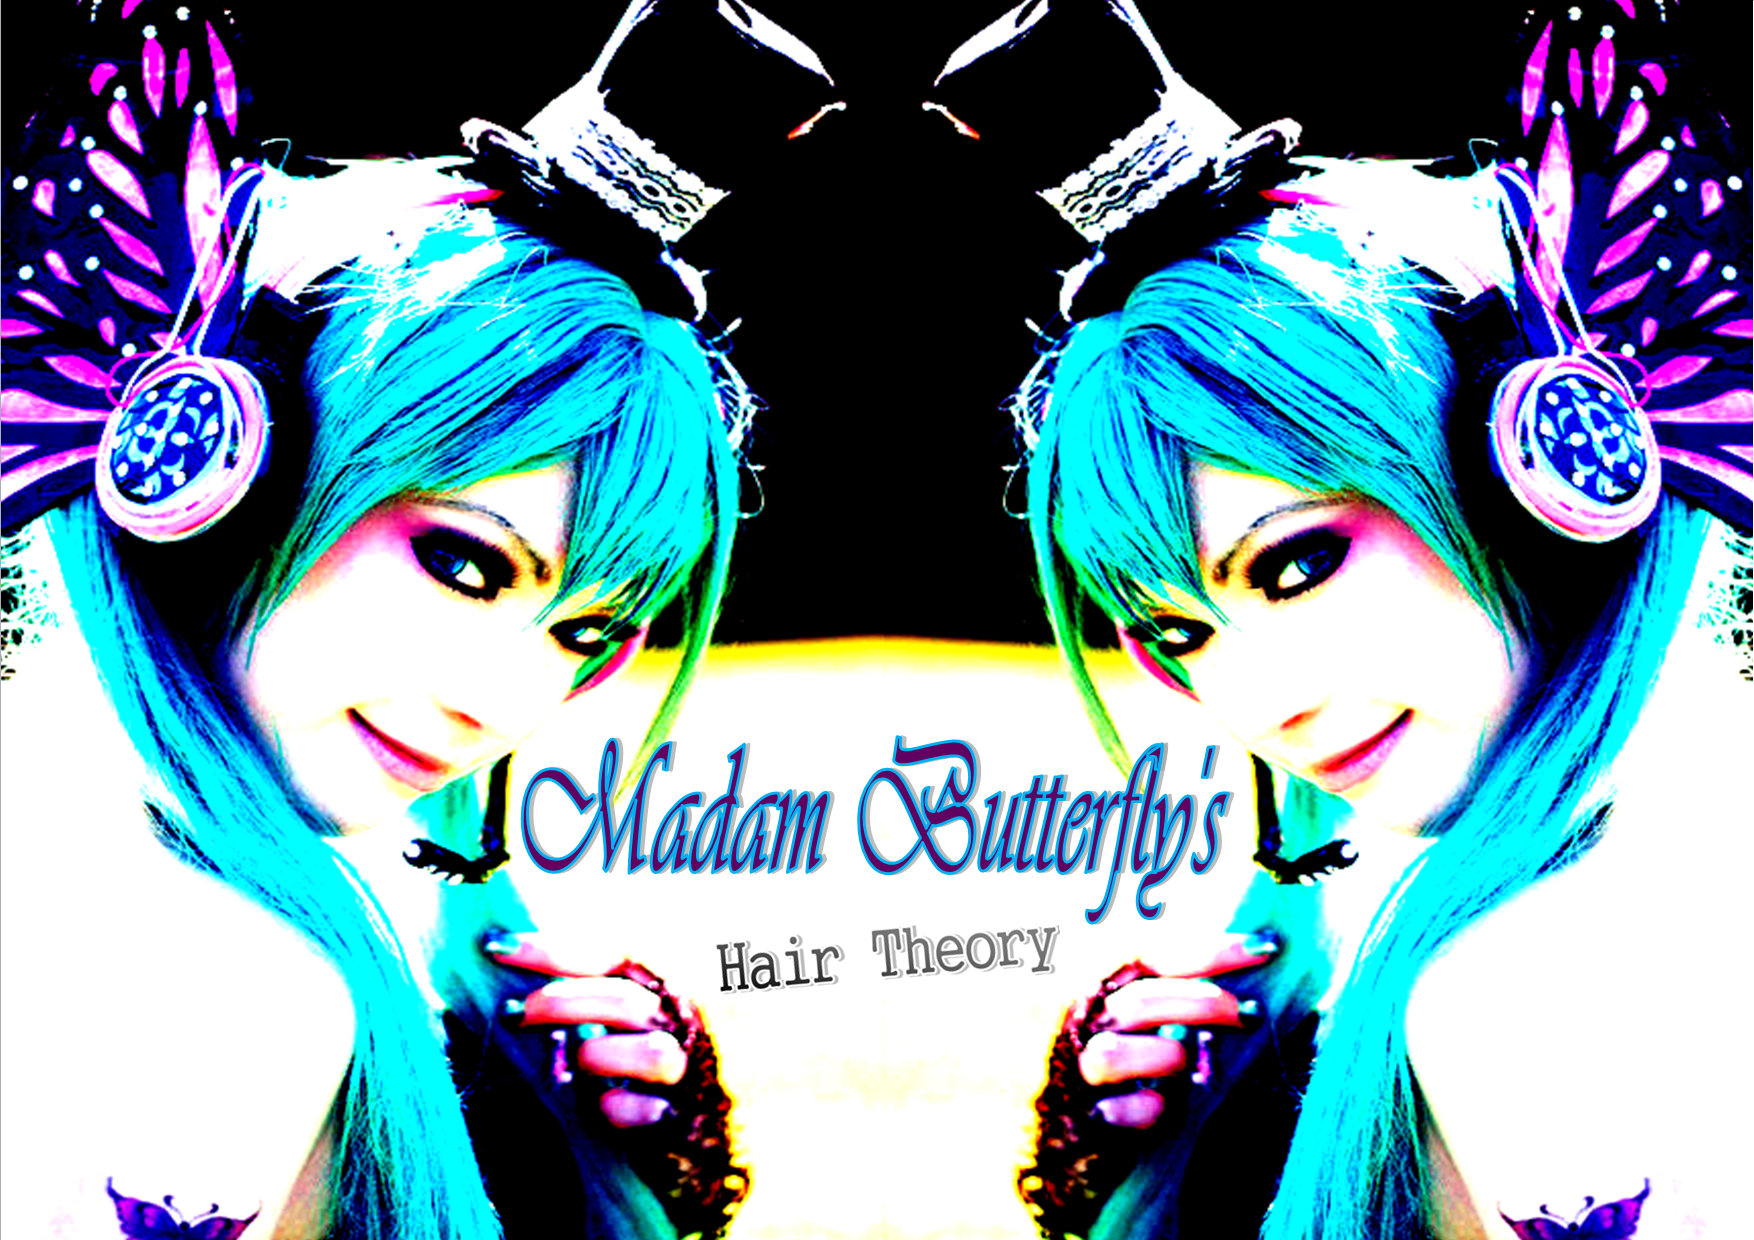 Madam Butterfly's Hair Theory Logo and Images